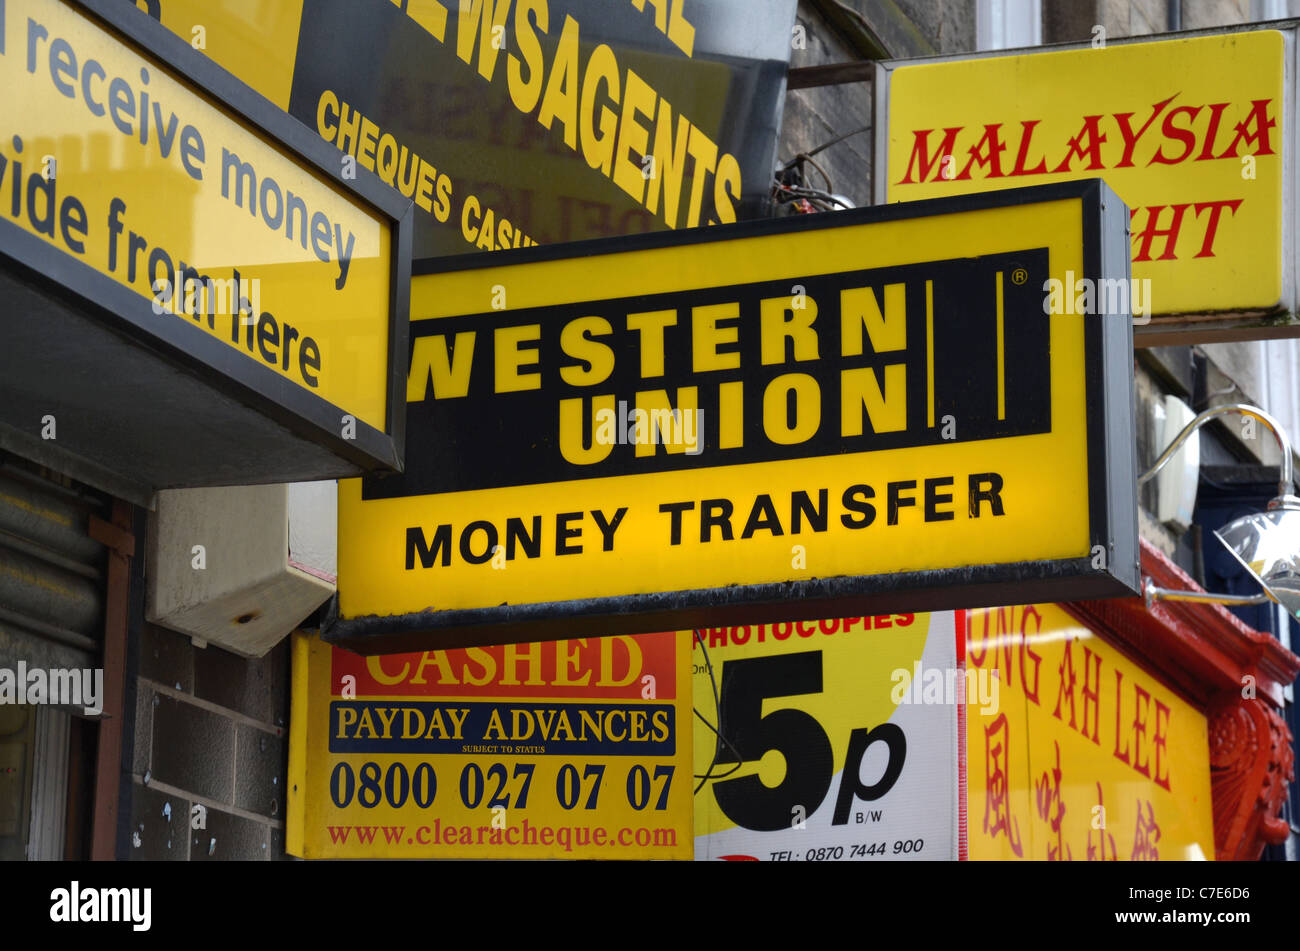 Western Union Money Transfer High Resolution Stock Photography And Images Alamy